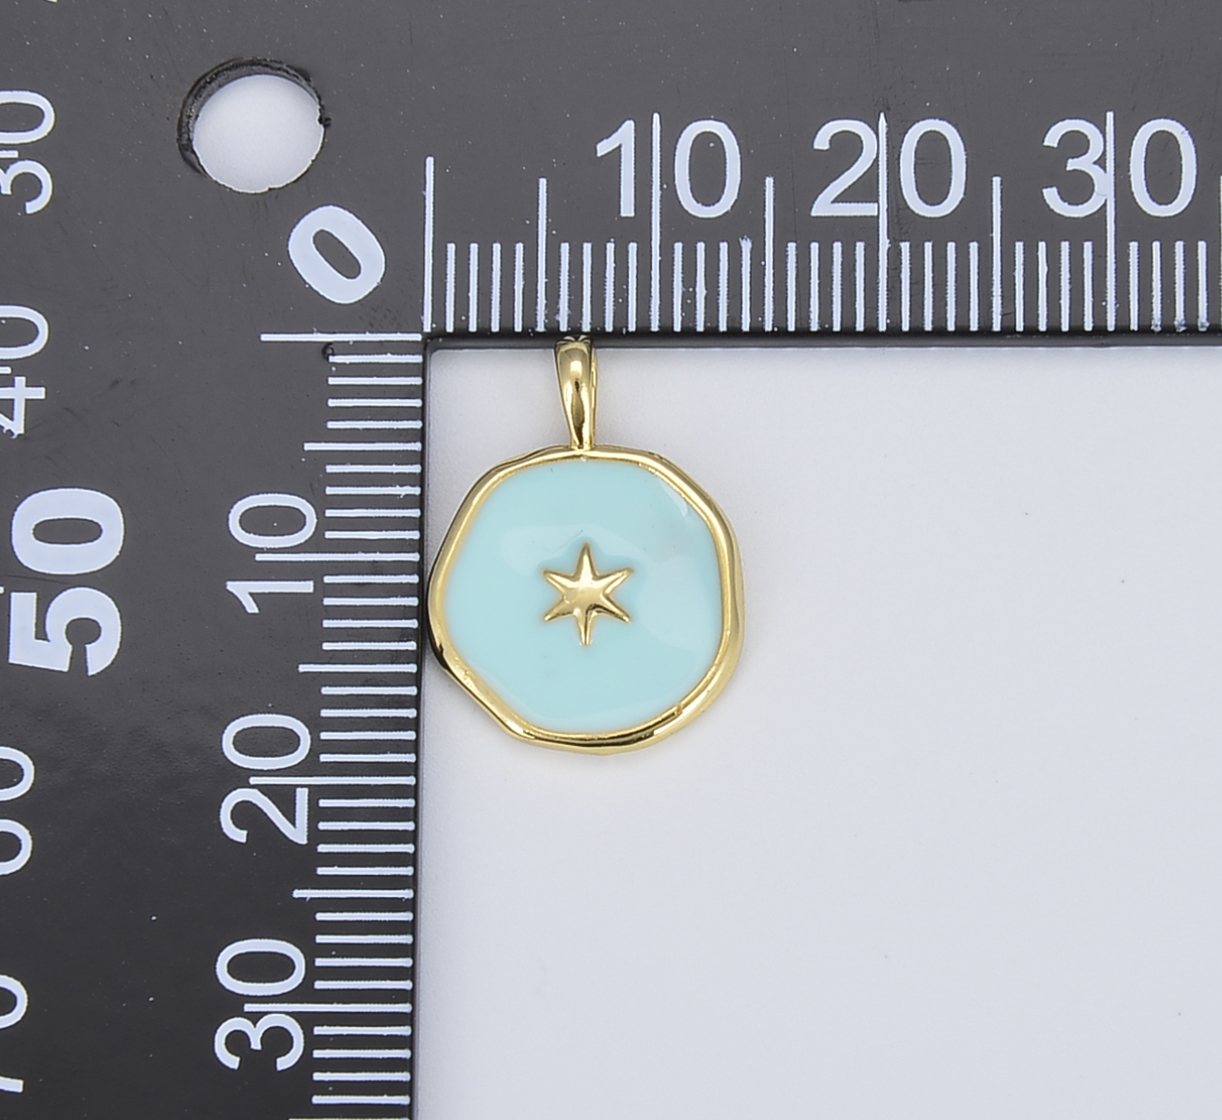 Celestial Jewelry Minimalist Jewelry Making supply D-354 Gold Star Pendant 25x10mm 24k Gold Filled North Star Charms